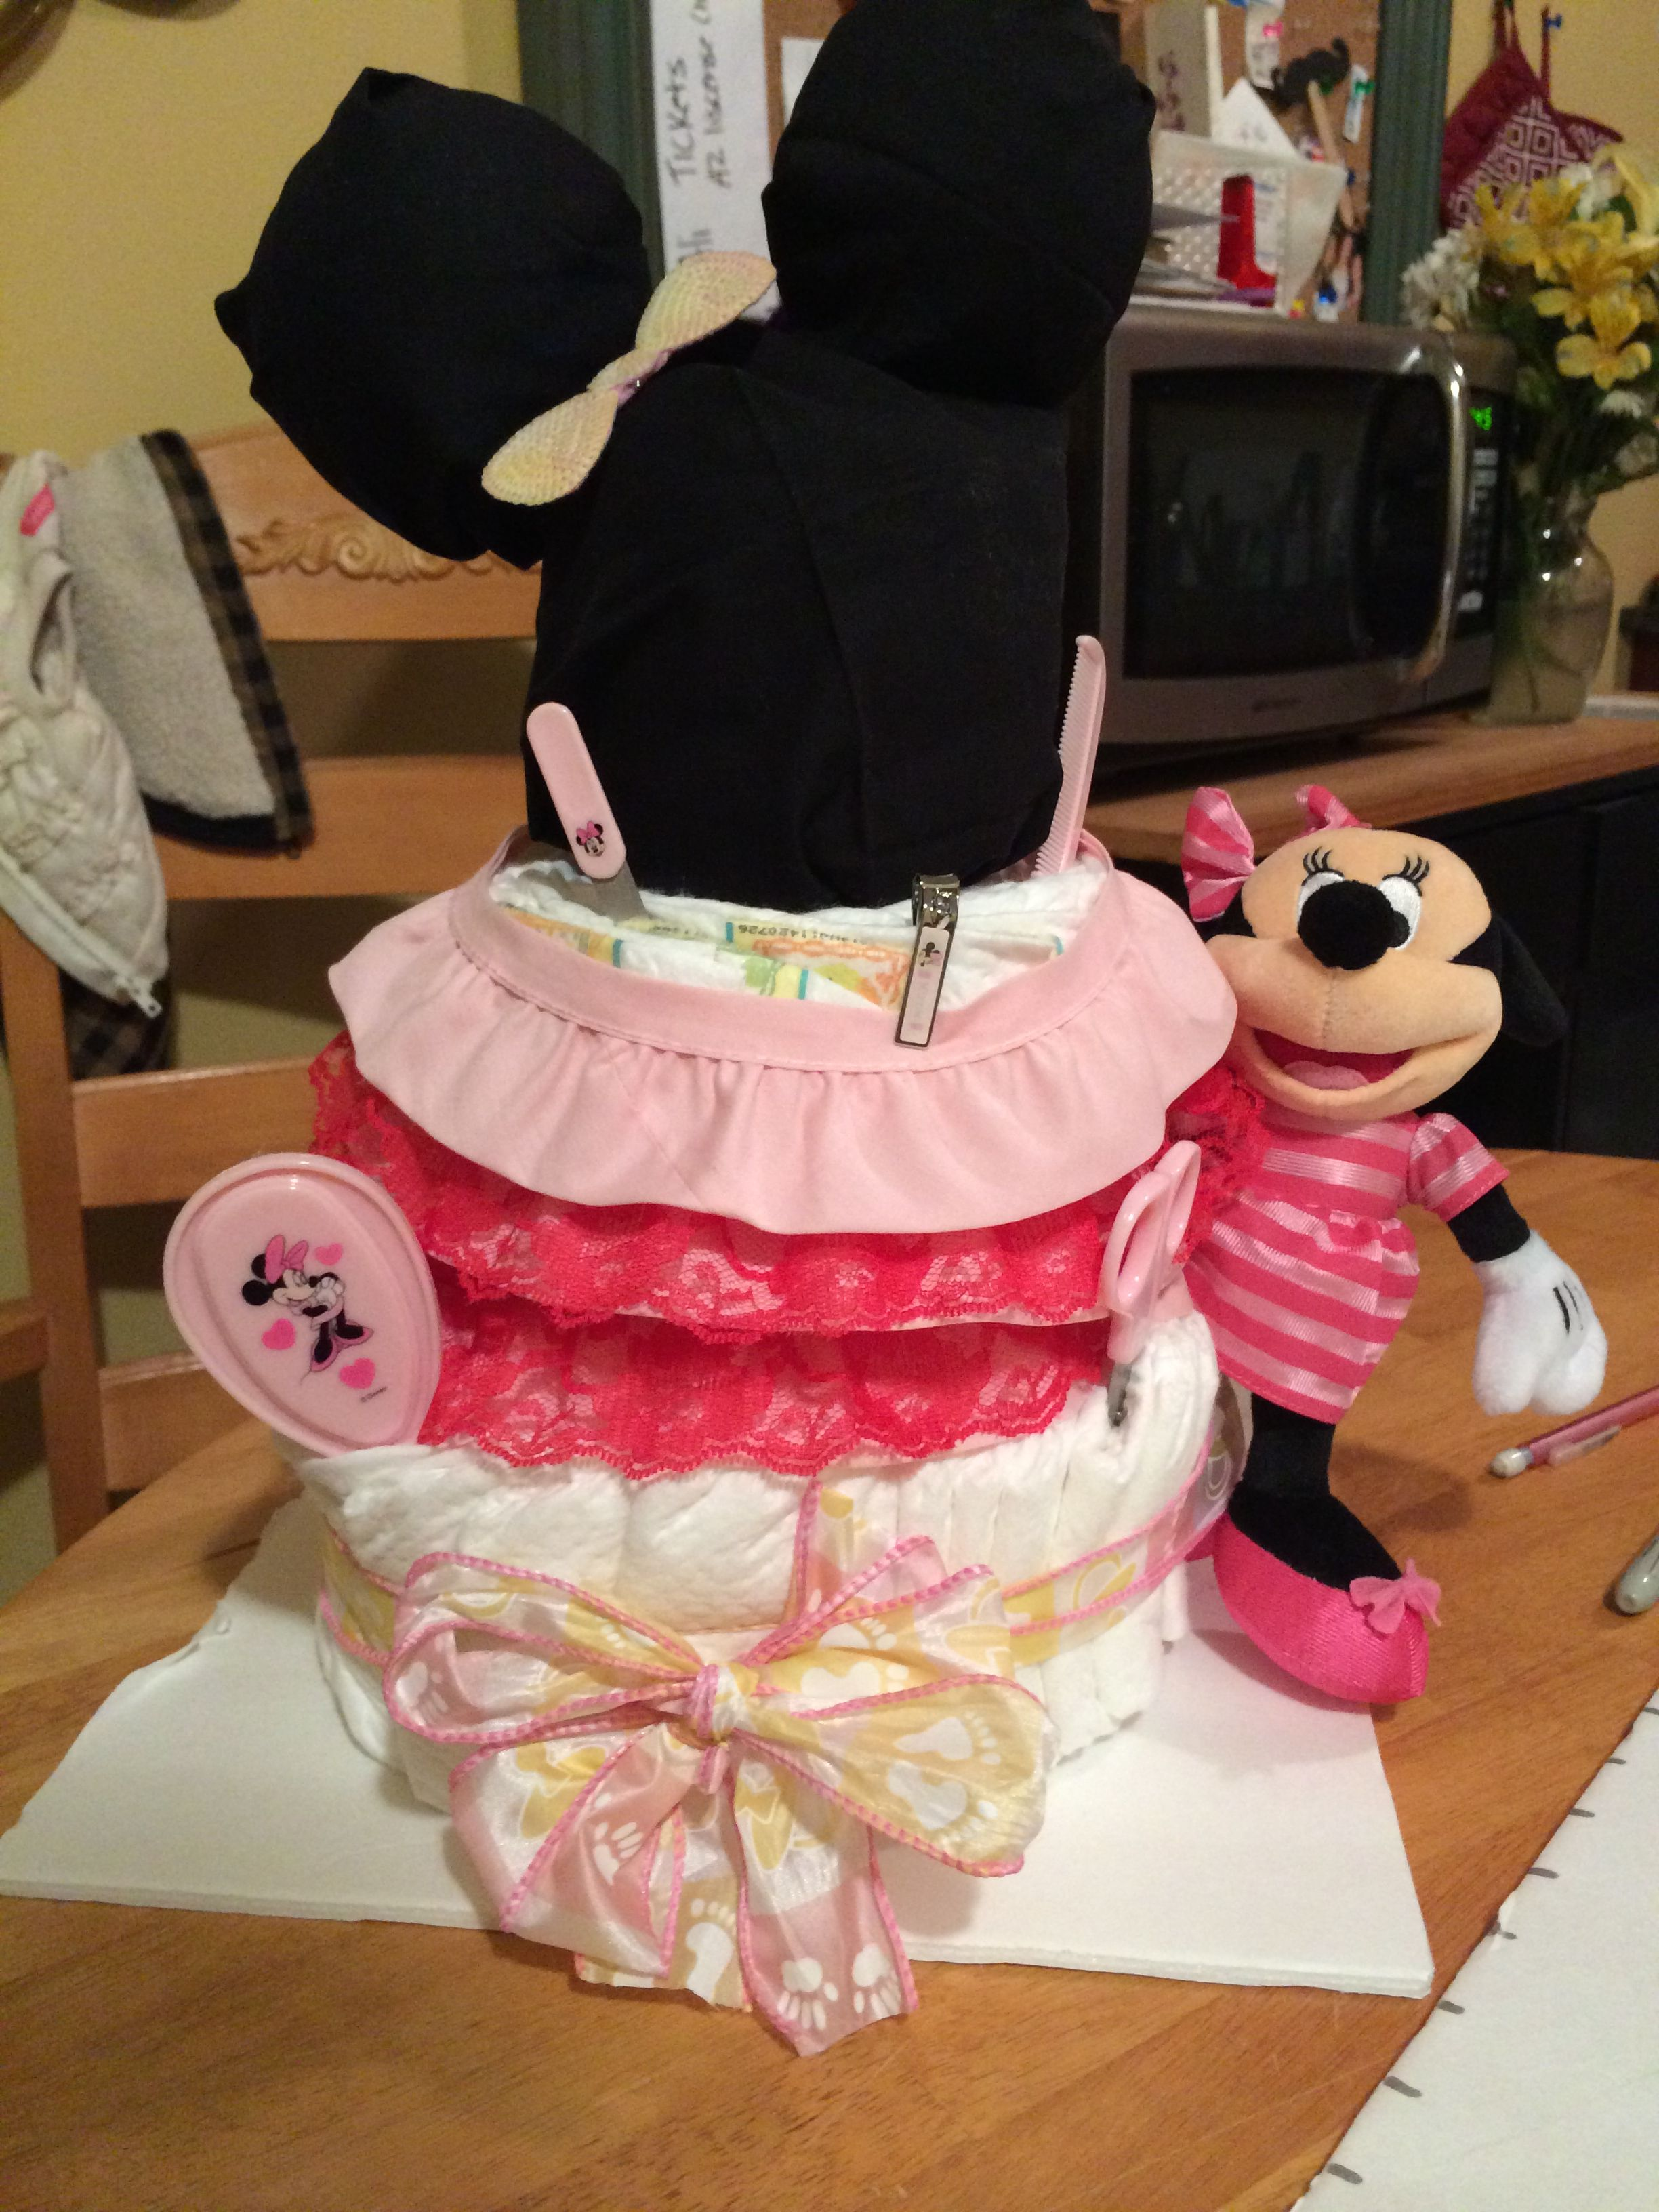 Minnie Mouse Diaper cake #babyshower #diapercake #personalizedonsies #personalized #blingedout #bling